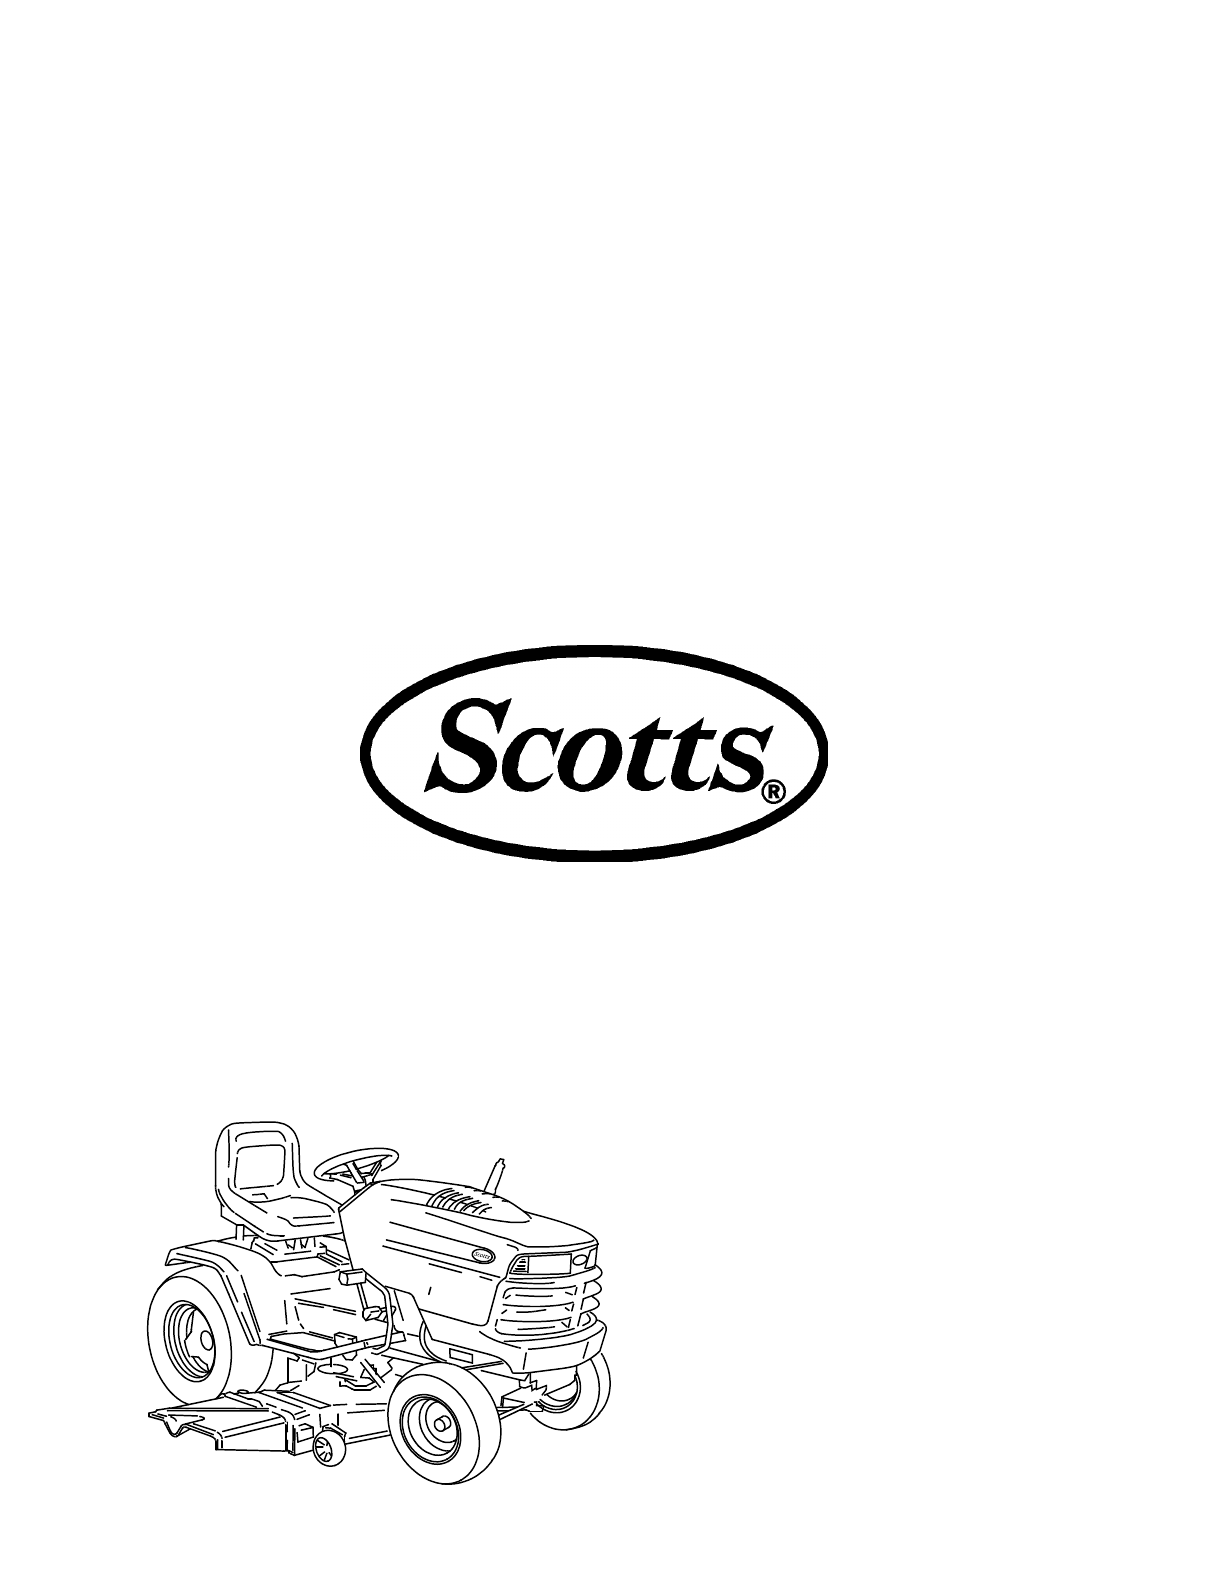 74d6465d 604f df44 71f6 2ff6ec9f391a bg1 scotts lawn mower s2048, s2554 user guide manualsonline com Scotts S2554 Wiring-Diagram at bayanpartner.co